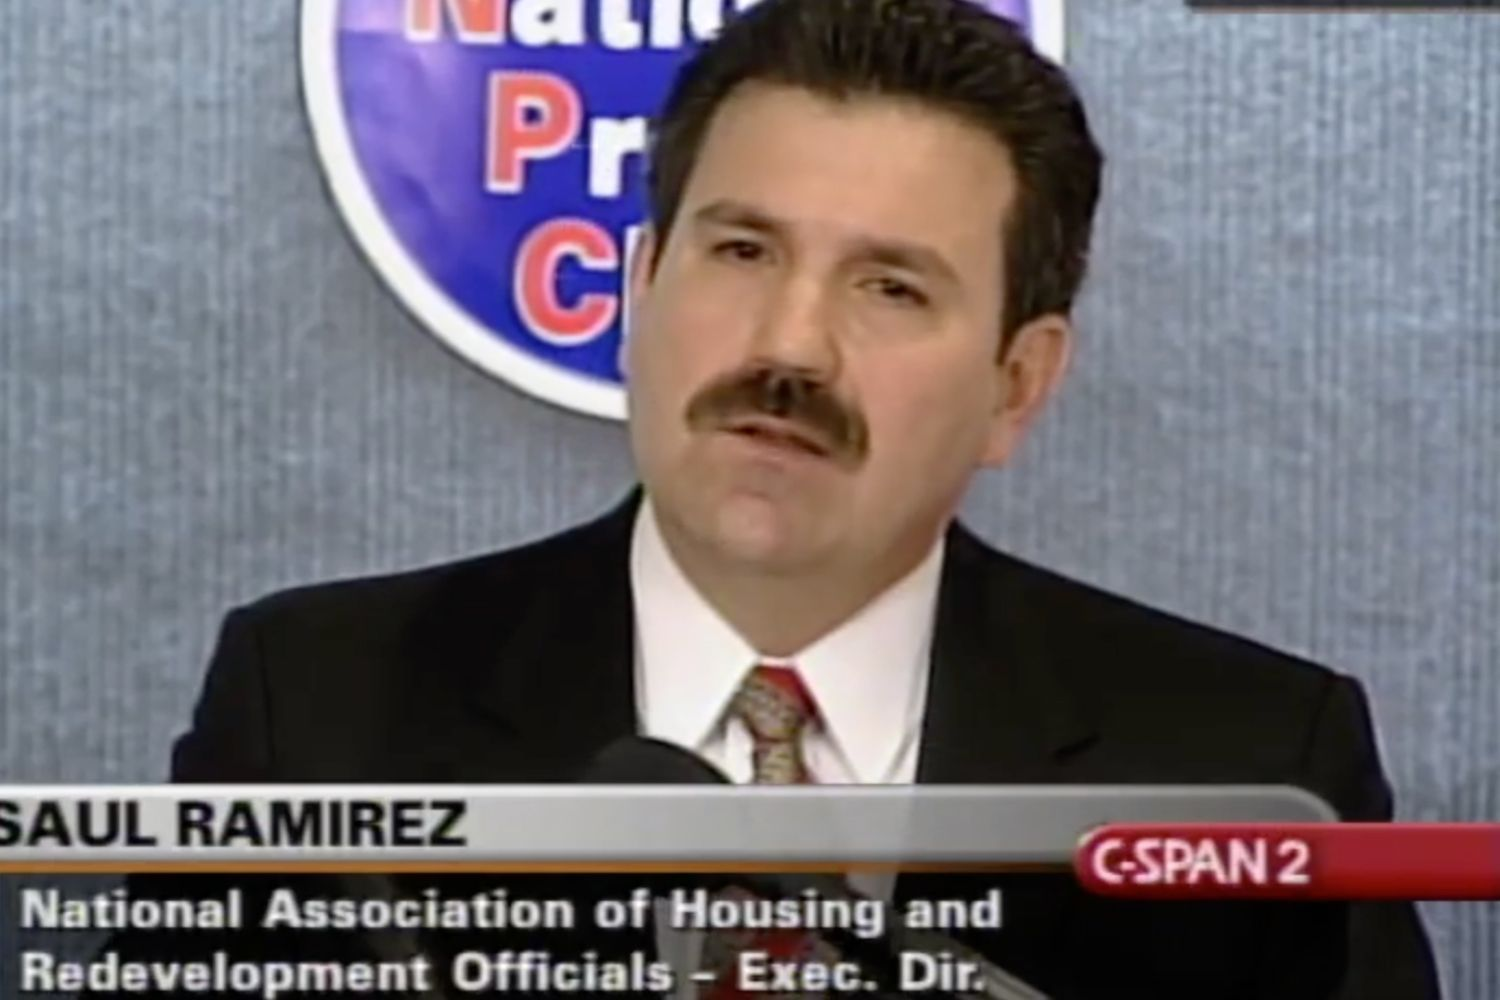 Saul Ramirez speaking on behalf of the National Association of Housing and Redevelopment in 2003.